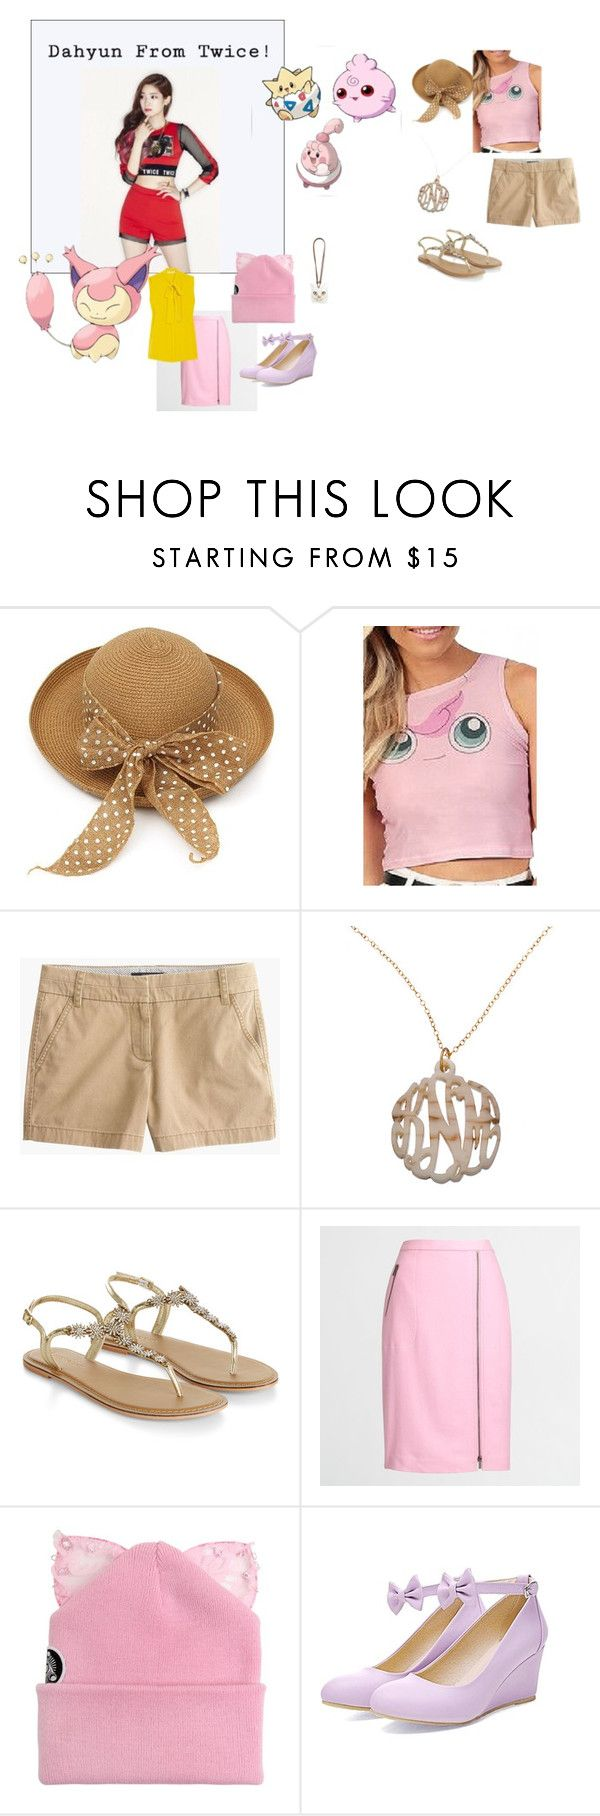 """""""Dahyun"""" by mandalinaqitrydewi on Polyvore featuring J.Crew, Initial Reaction, Accessorize, Silver Spoon Attire and Loewe"""